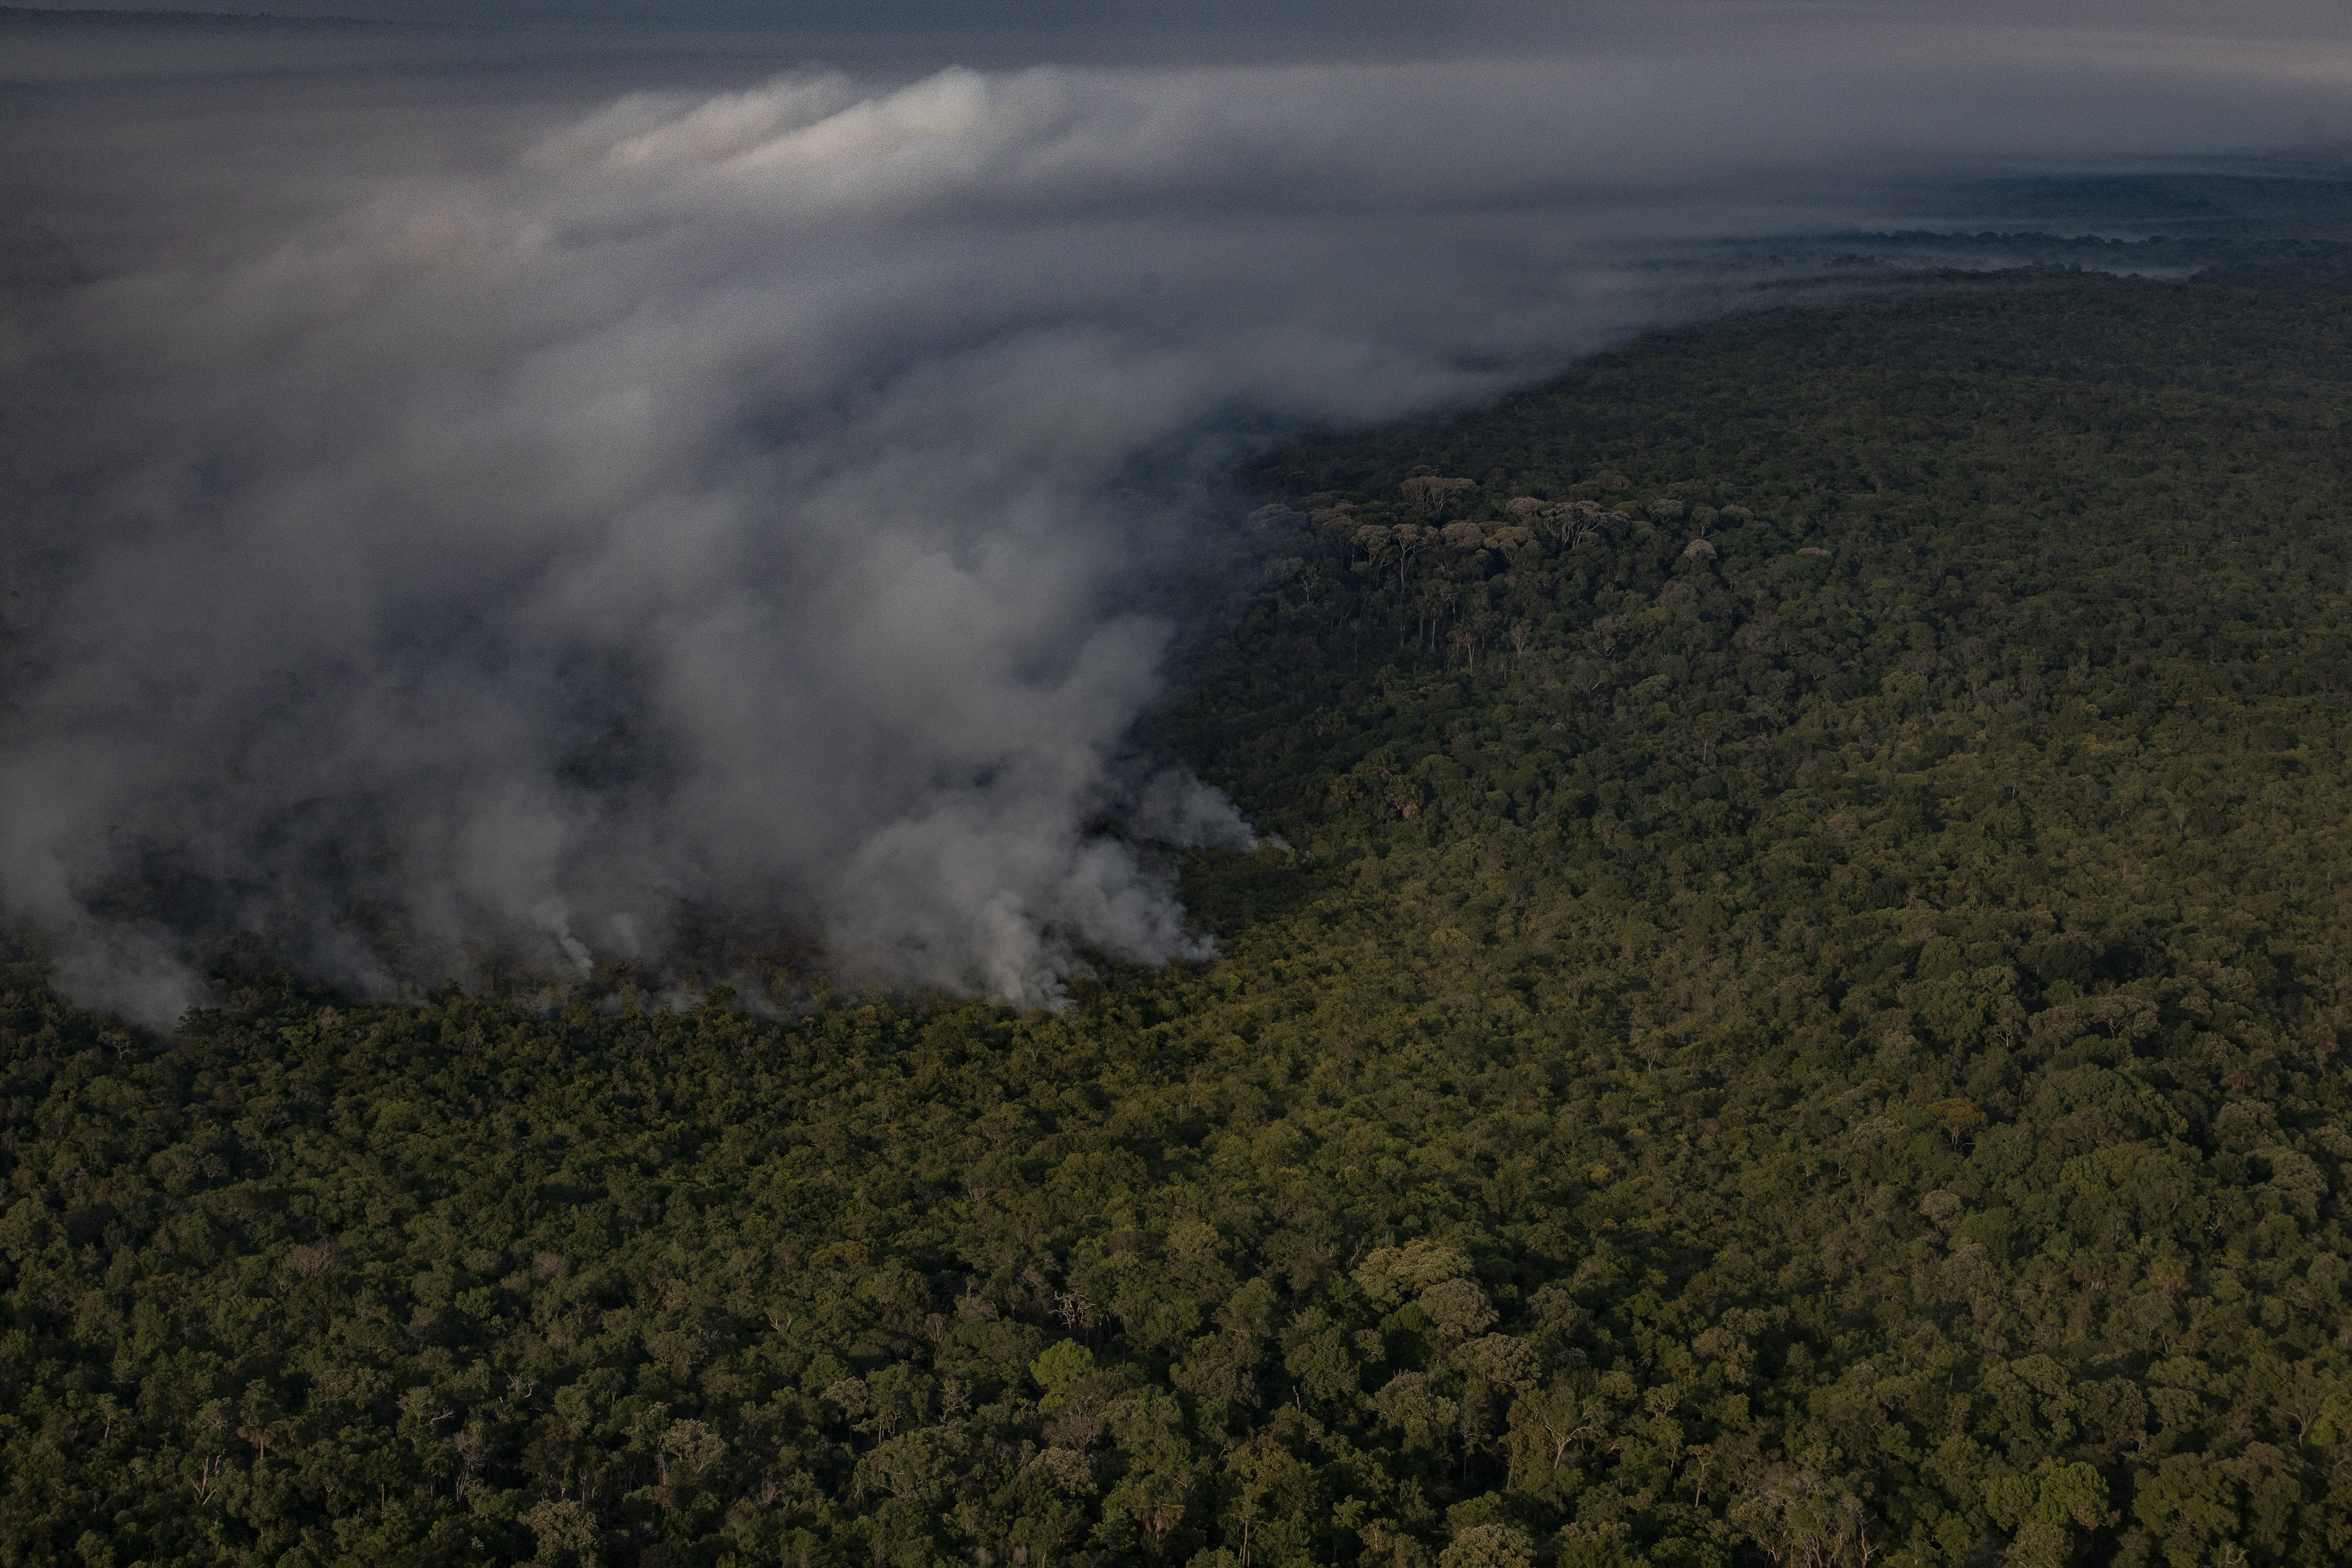 An aerial view of a burned forest area next to a cattle ranch in the state of Pará in Altamira, Brazil, Aug. 31, 2019. A deal reached 10 years ago was meant to stop the setting of fires by ranchers and others, but the ecological arson continues as the Earth warms. (Victor Moriyama/The New York Times) (GDA via AP Images)